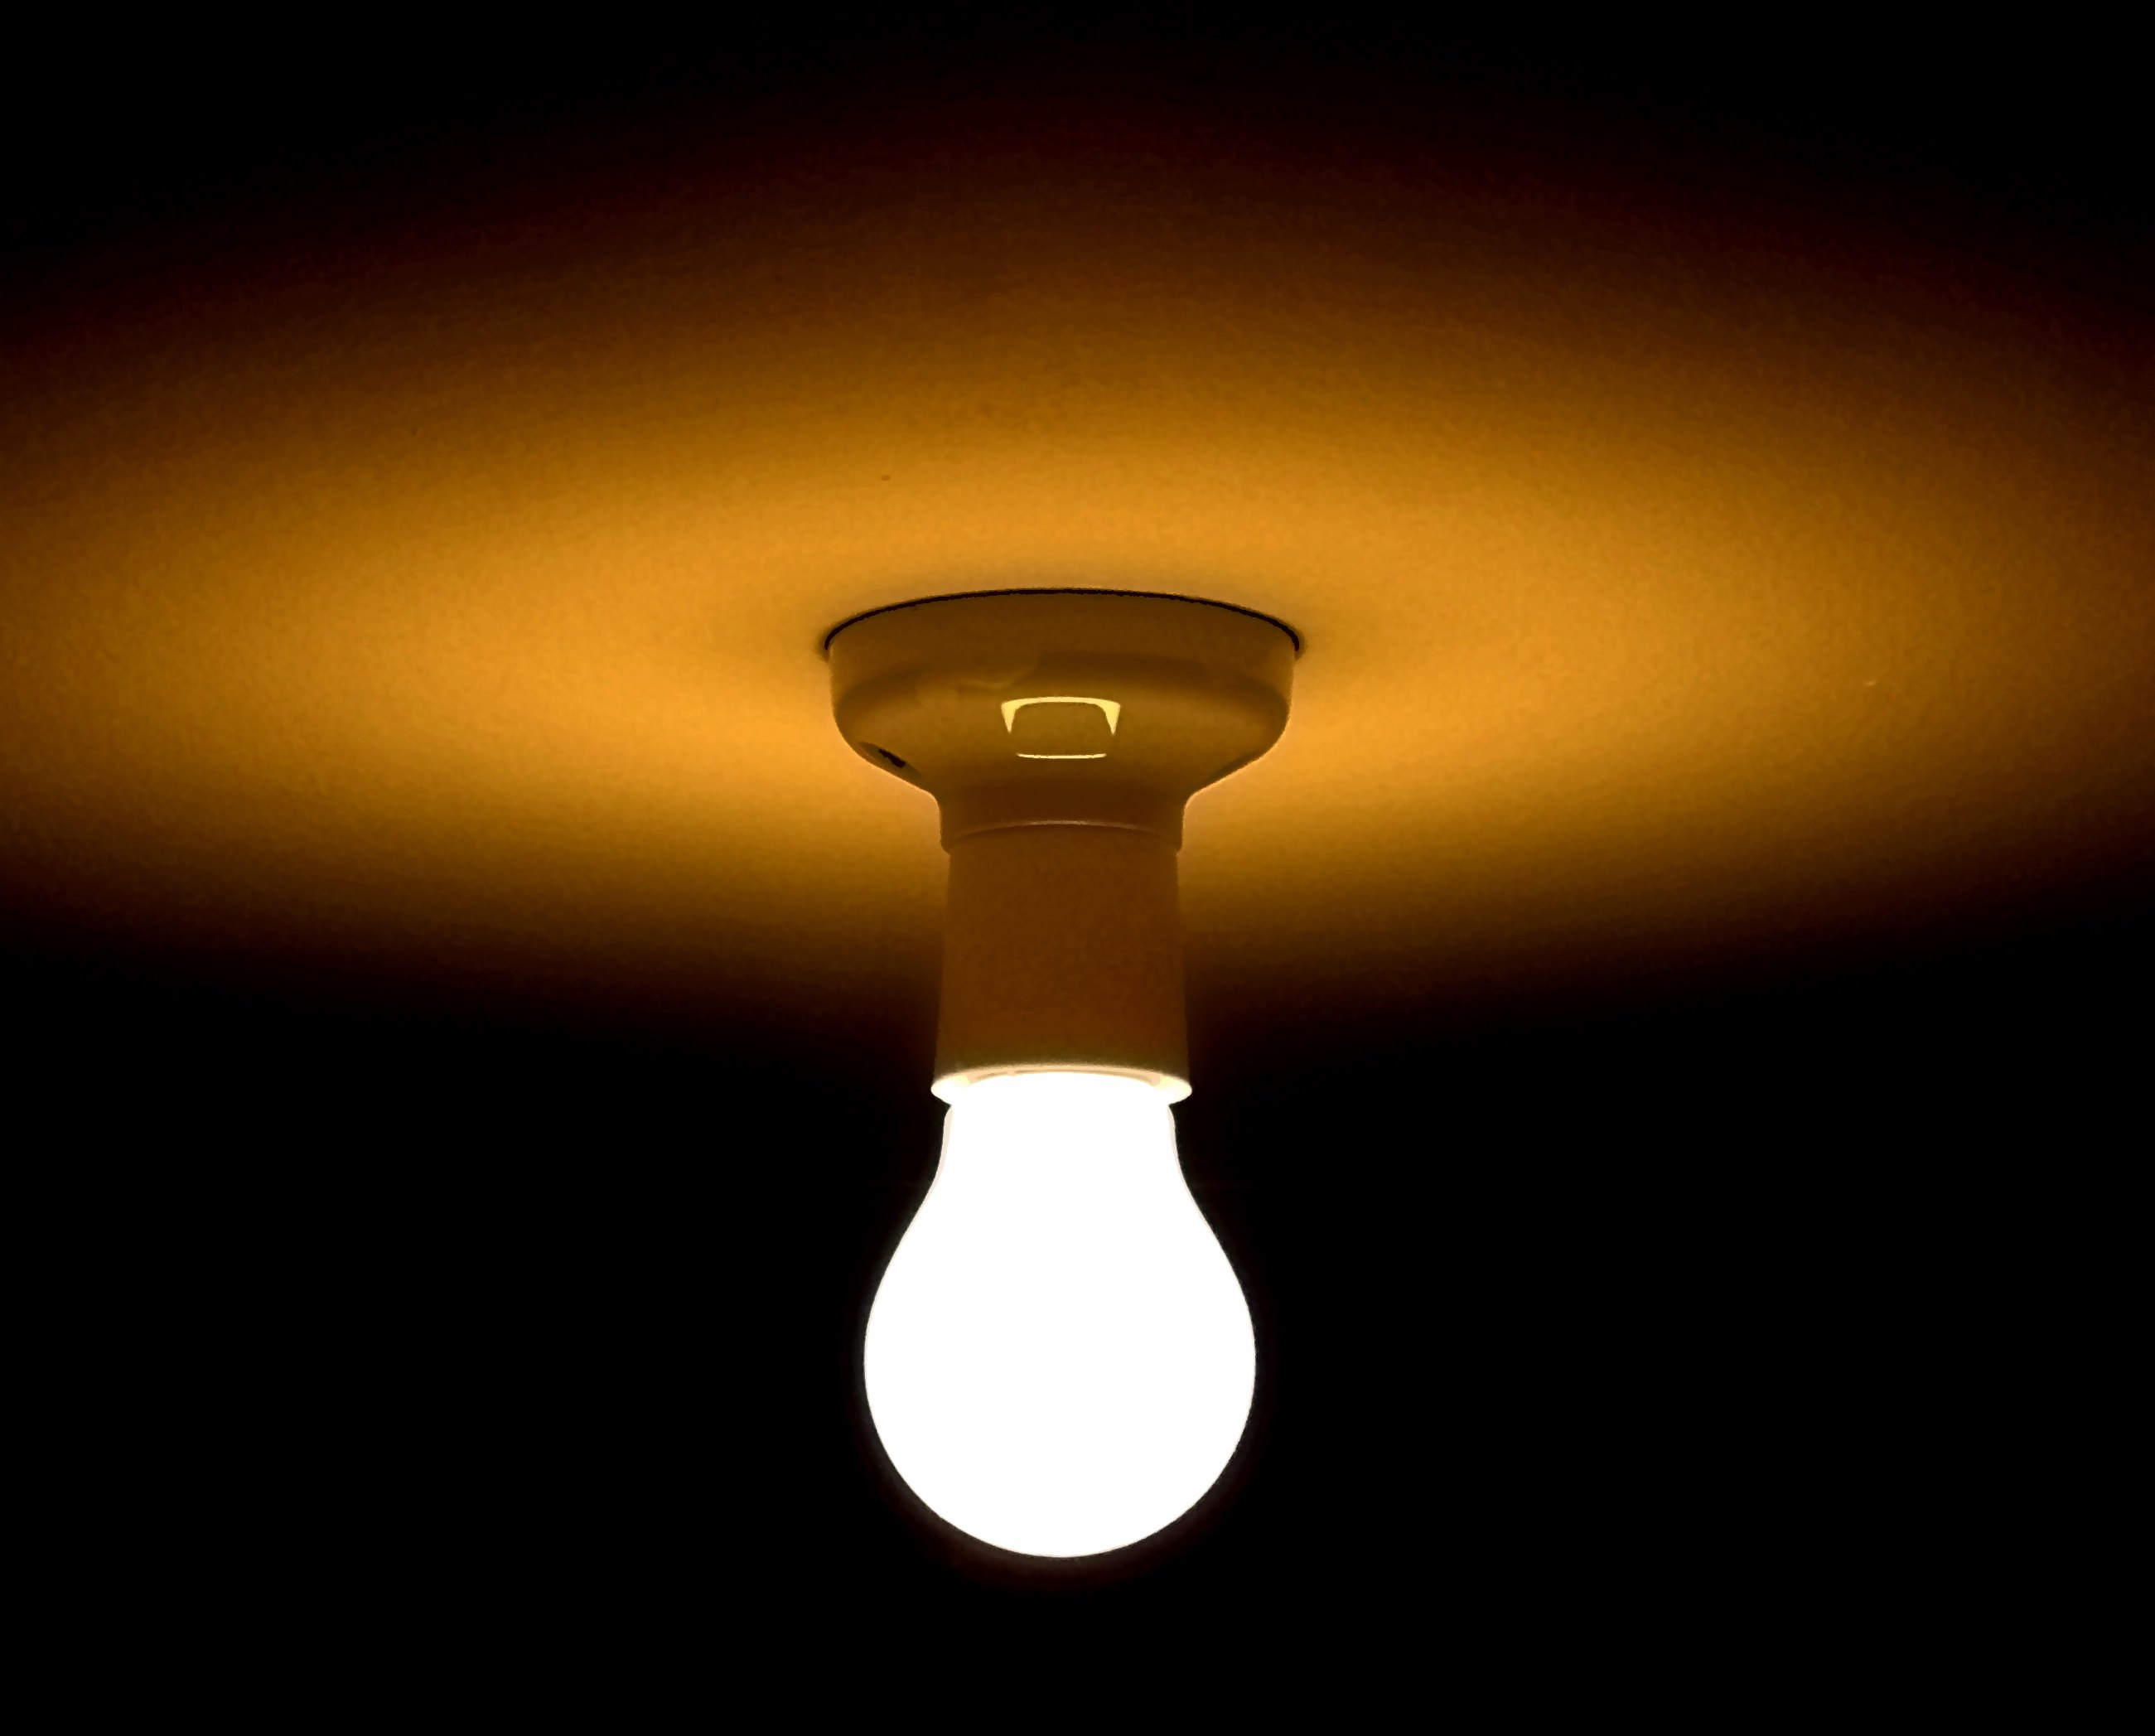 Home Automation â Energy Saving Solutions - Image 1